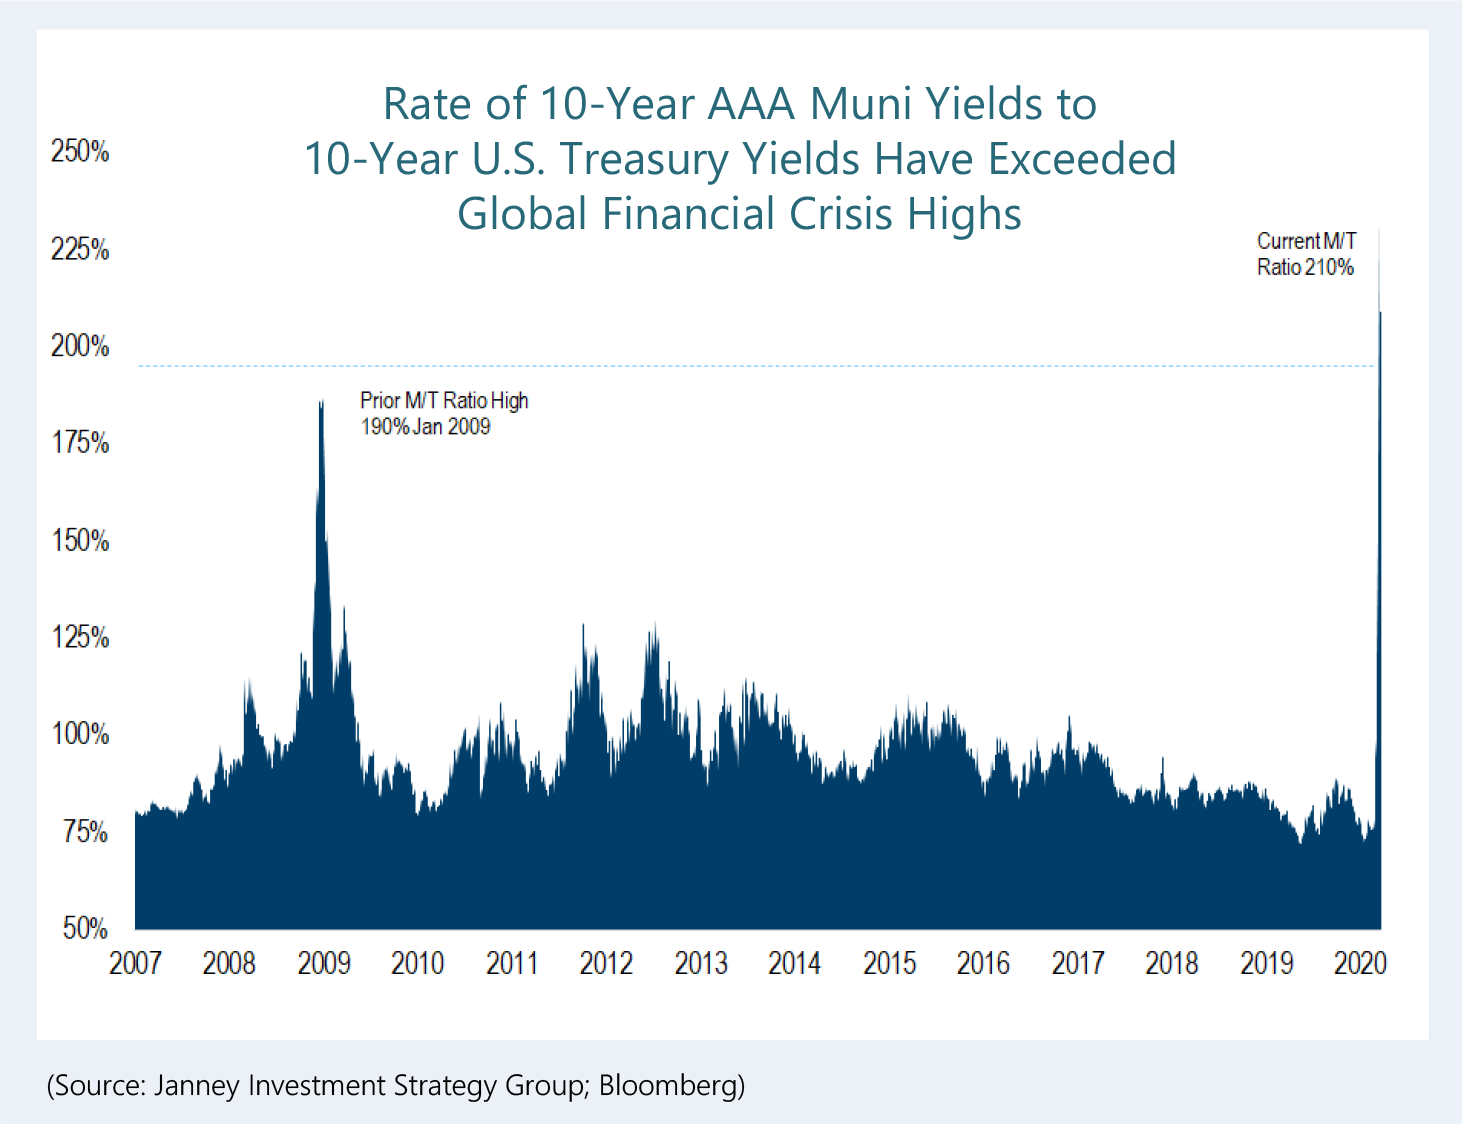 A chart shows the rate of 10-year AAA Muni Yields